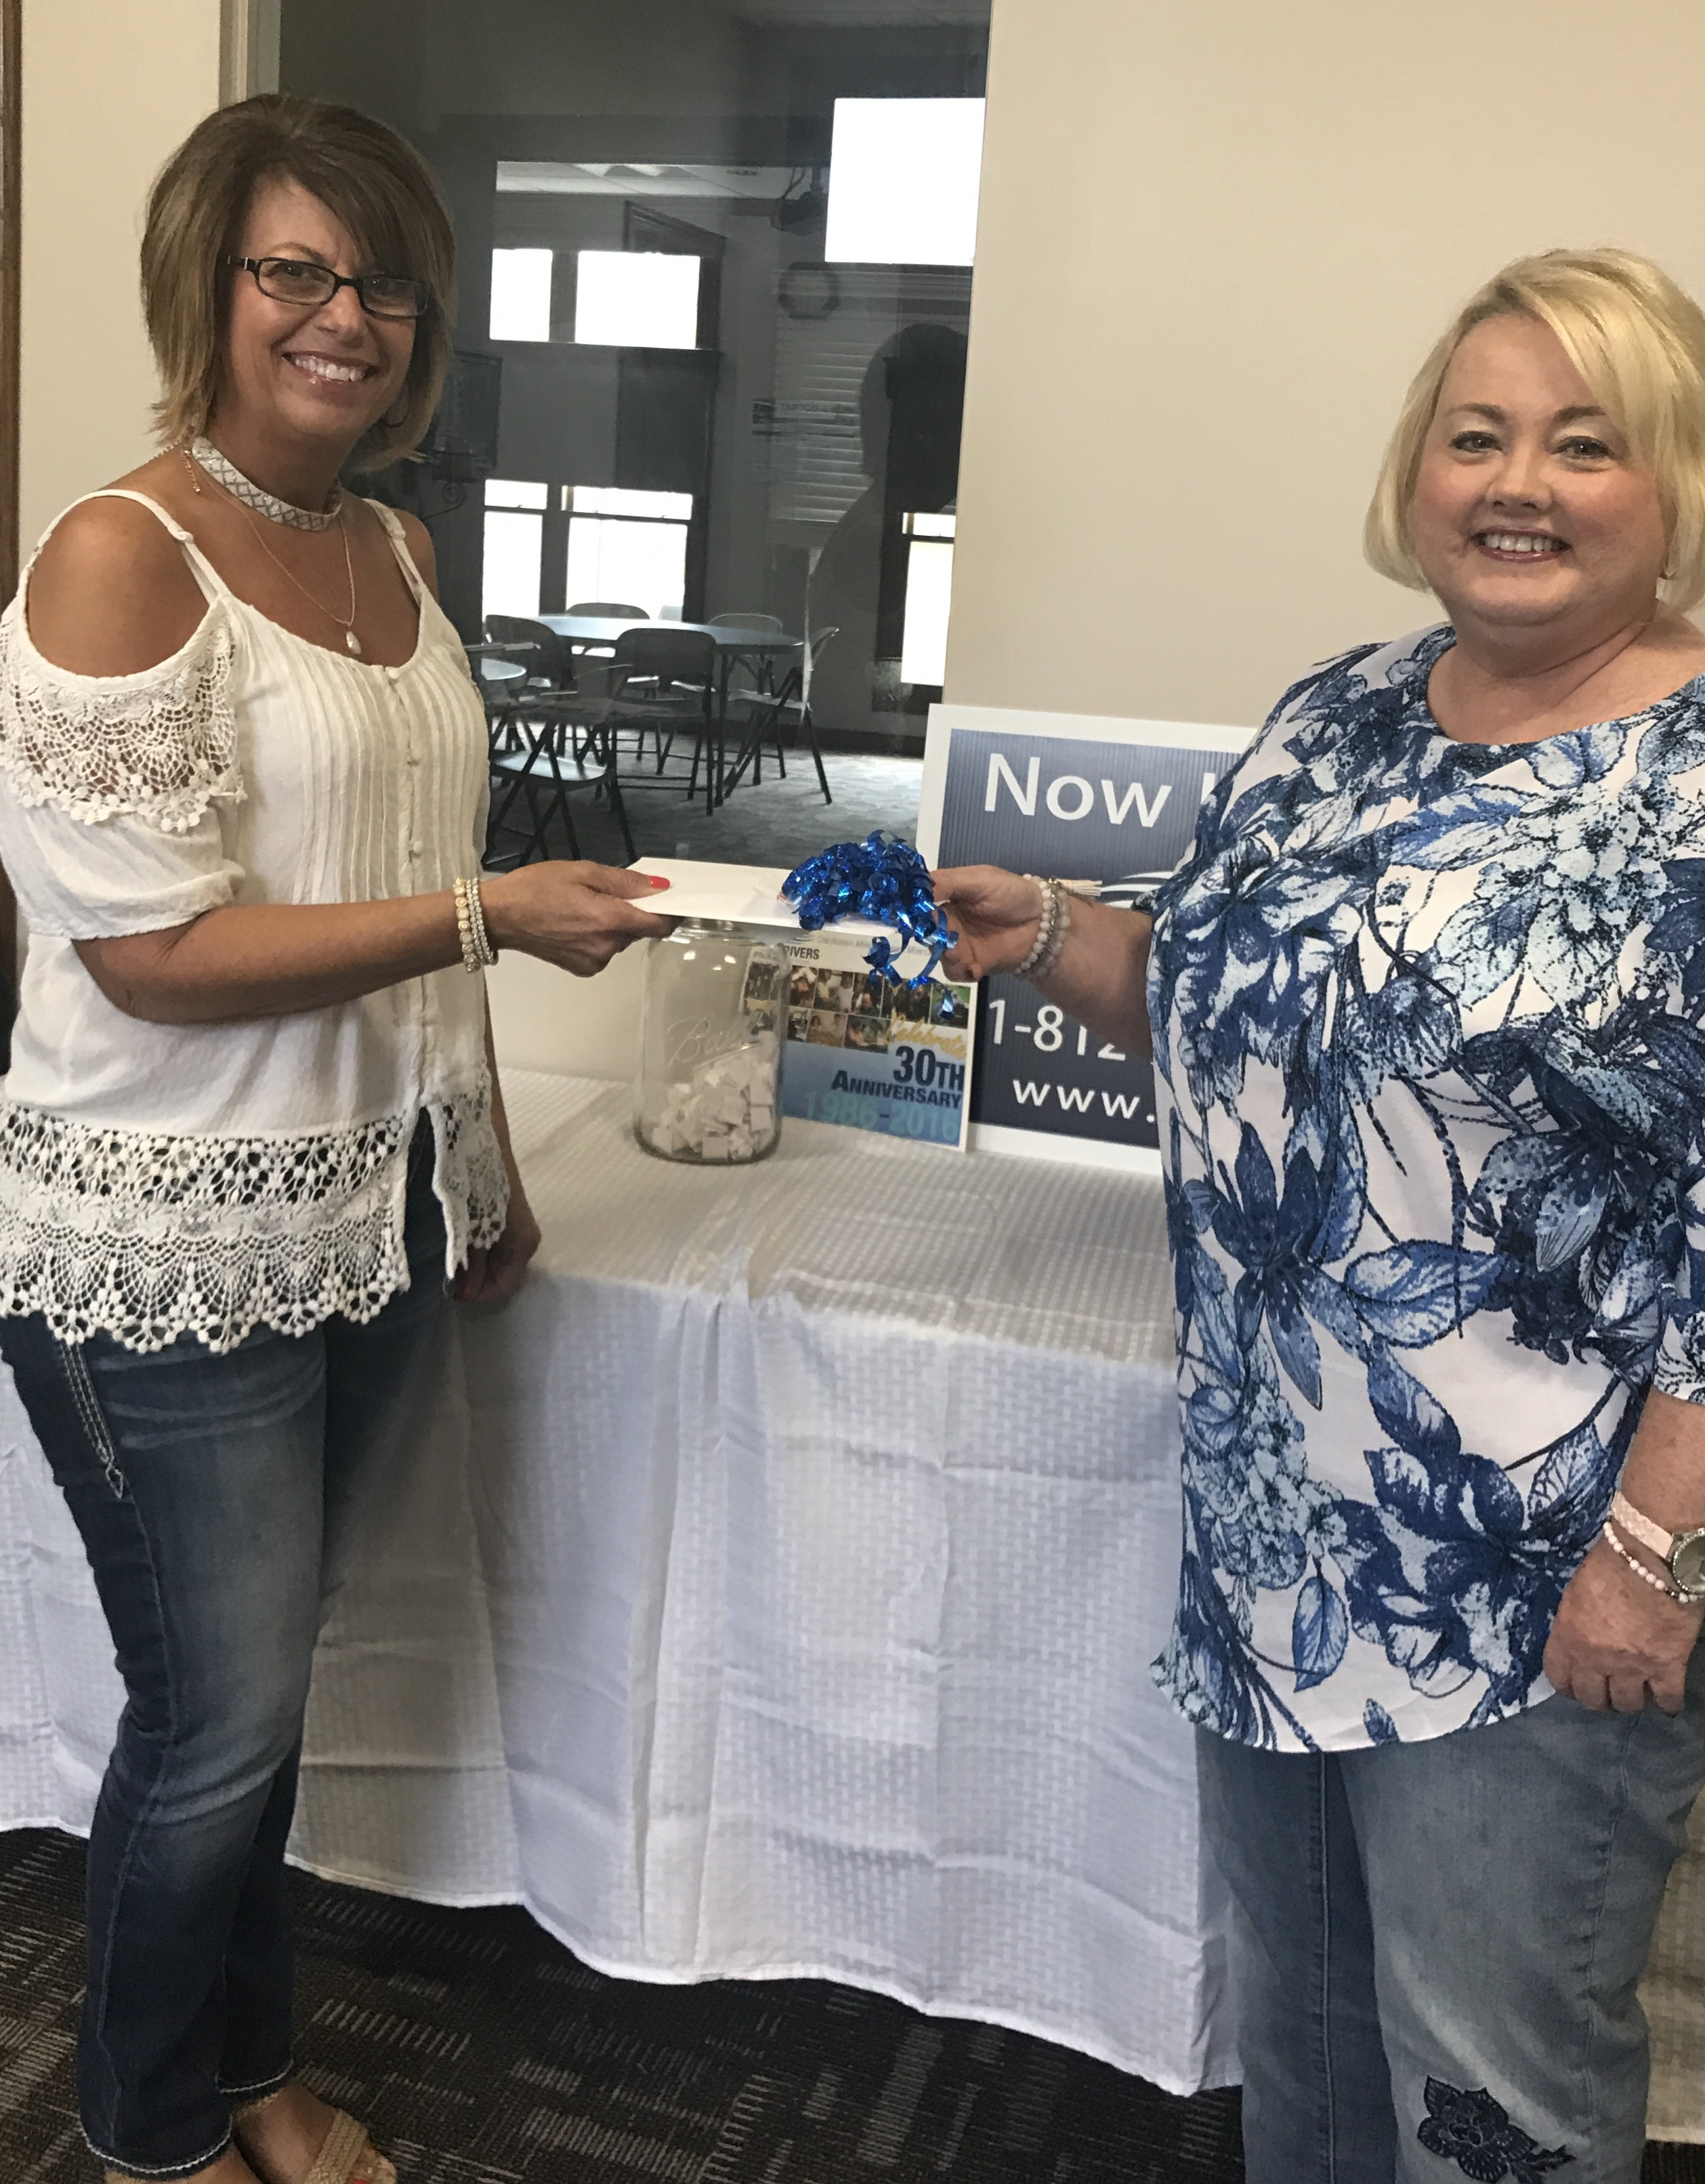 yle Ferrante who was Friday's winner from Daviess County Red Door receiving her Colts tickets and Visa gift cards from Sherri Tredway, Development Director